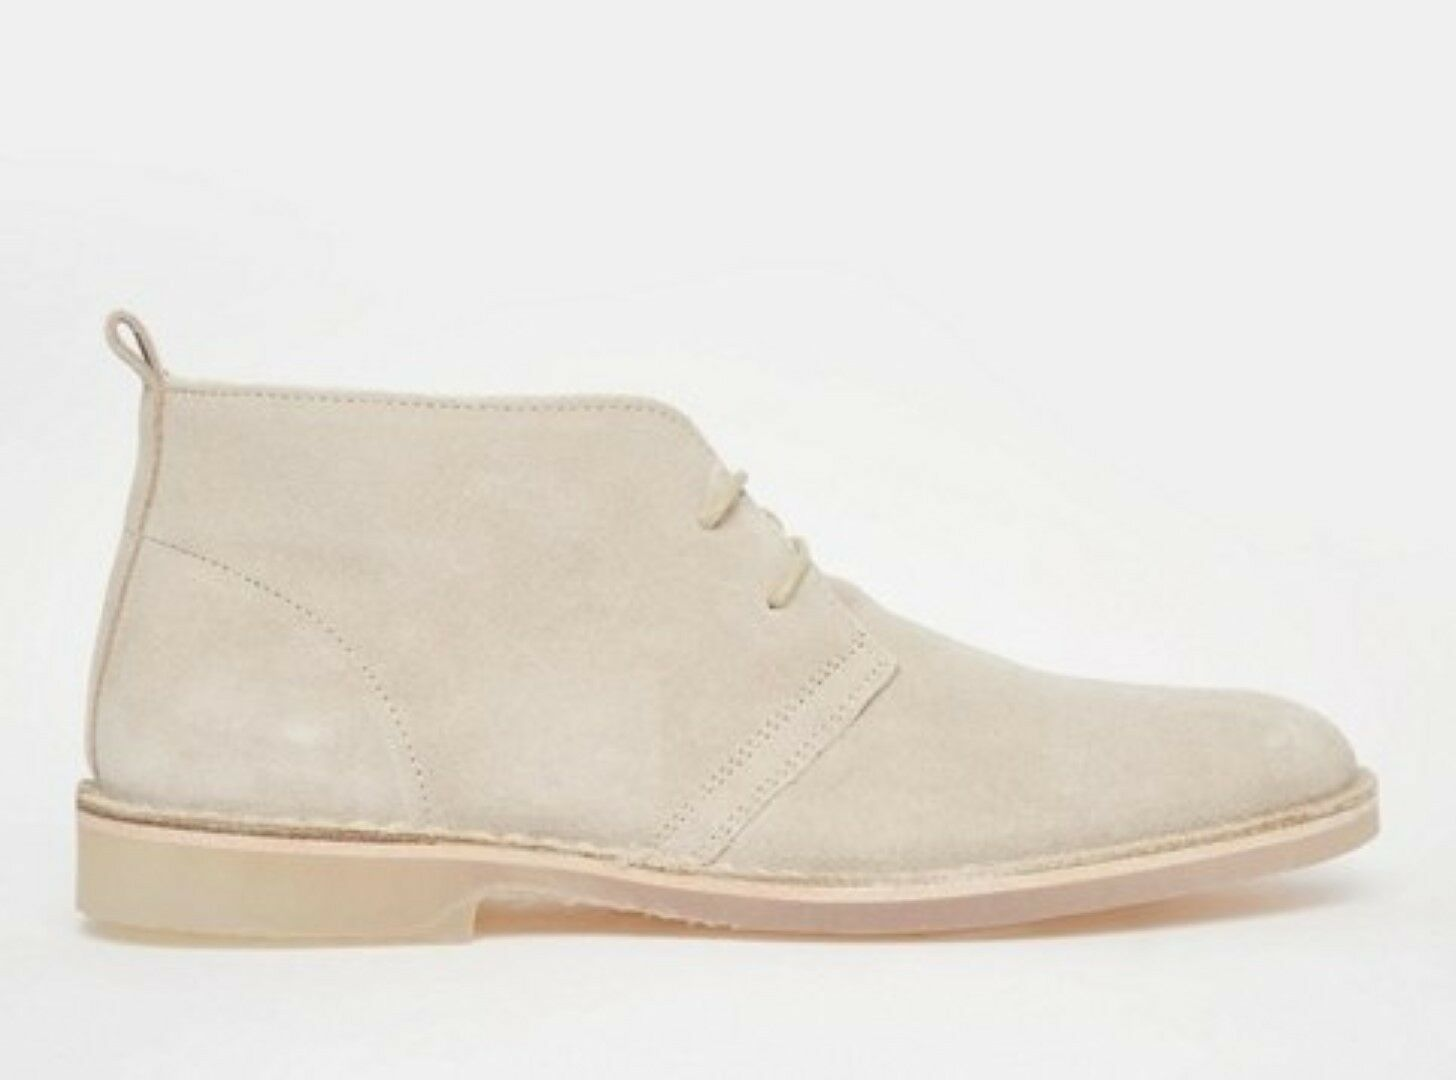 Standard Fortyfive Men's Jacoby Beige Suede Leather Desert Boots